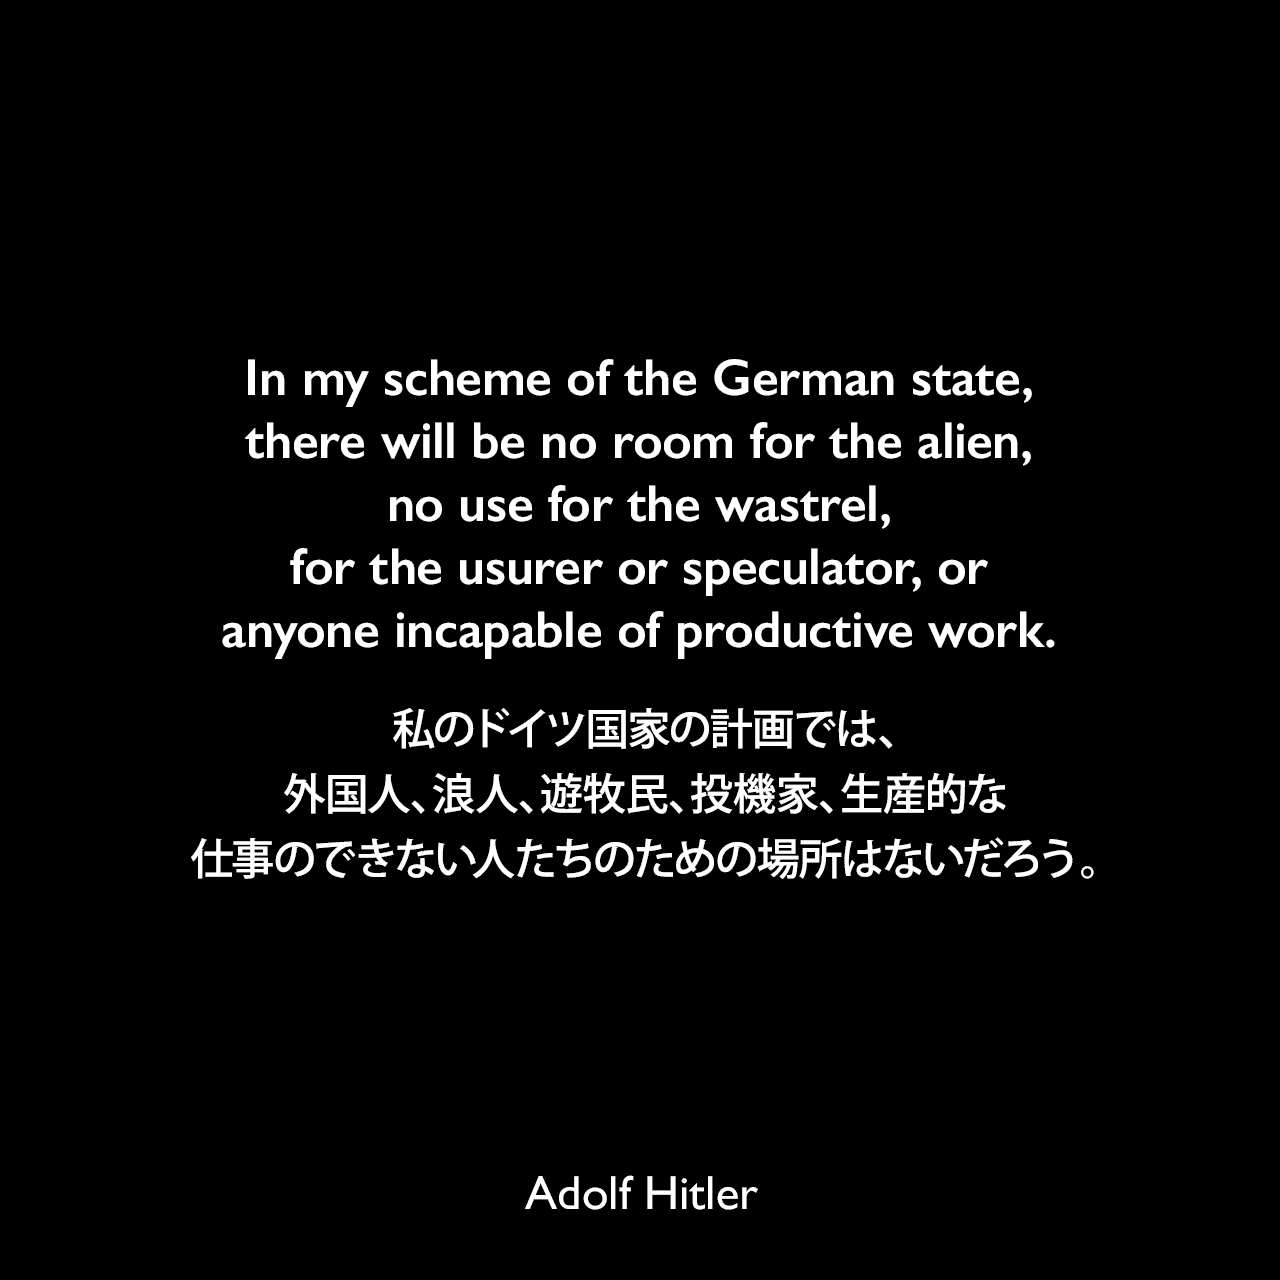 In my scheme of the German state, there will be no room for the alien, no use for the wastrel, for the usurer or speculator, or anyone incapable of productive work.私のドイツ国家の計画では、外国人、浪人、遊牧民、投機家、生産的な仕事のできない人たちのための場所はないだろう。- 1923年 詩人ジョージ・シルヴェスター・ヴィエレックとのインタビューよりAdolf Hitler